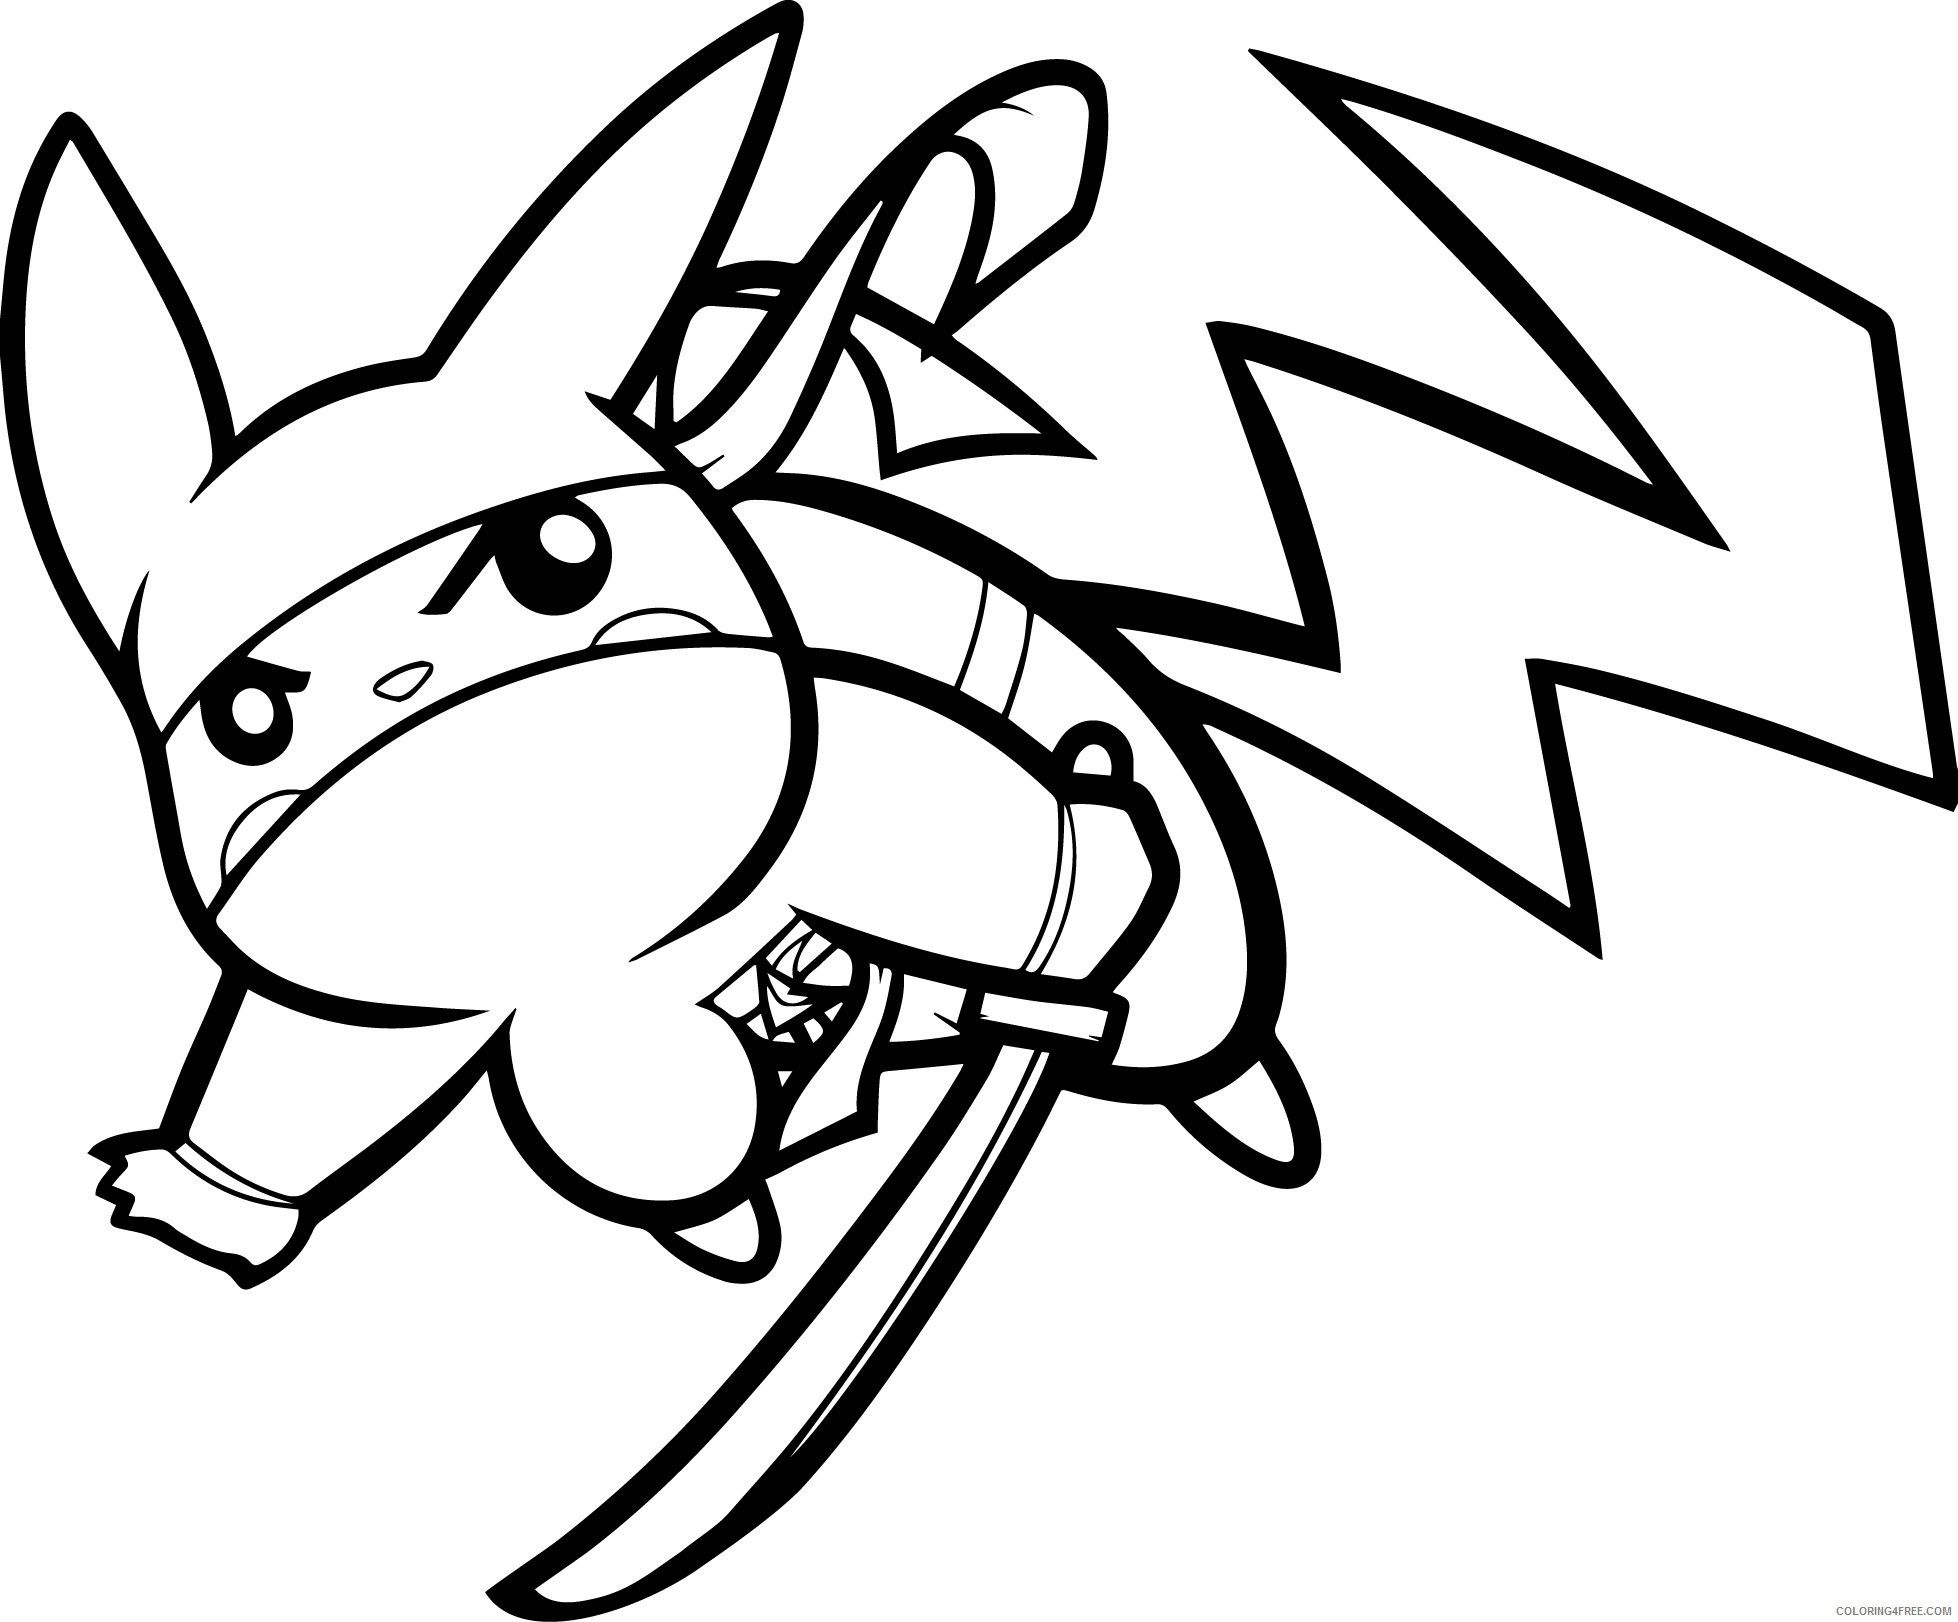 Pikachu Ninja Coloring Page Pokemon Coloring Sheets Pokemon